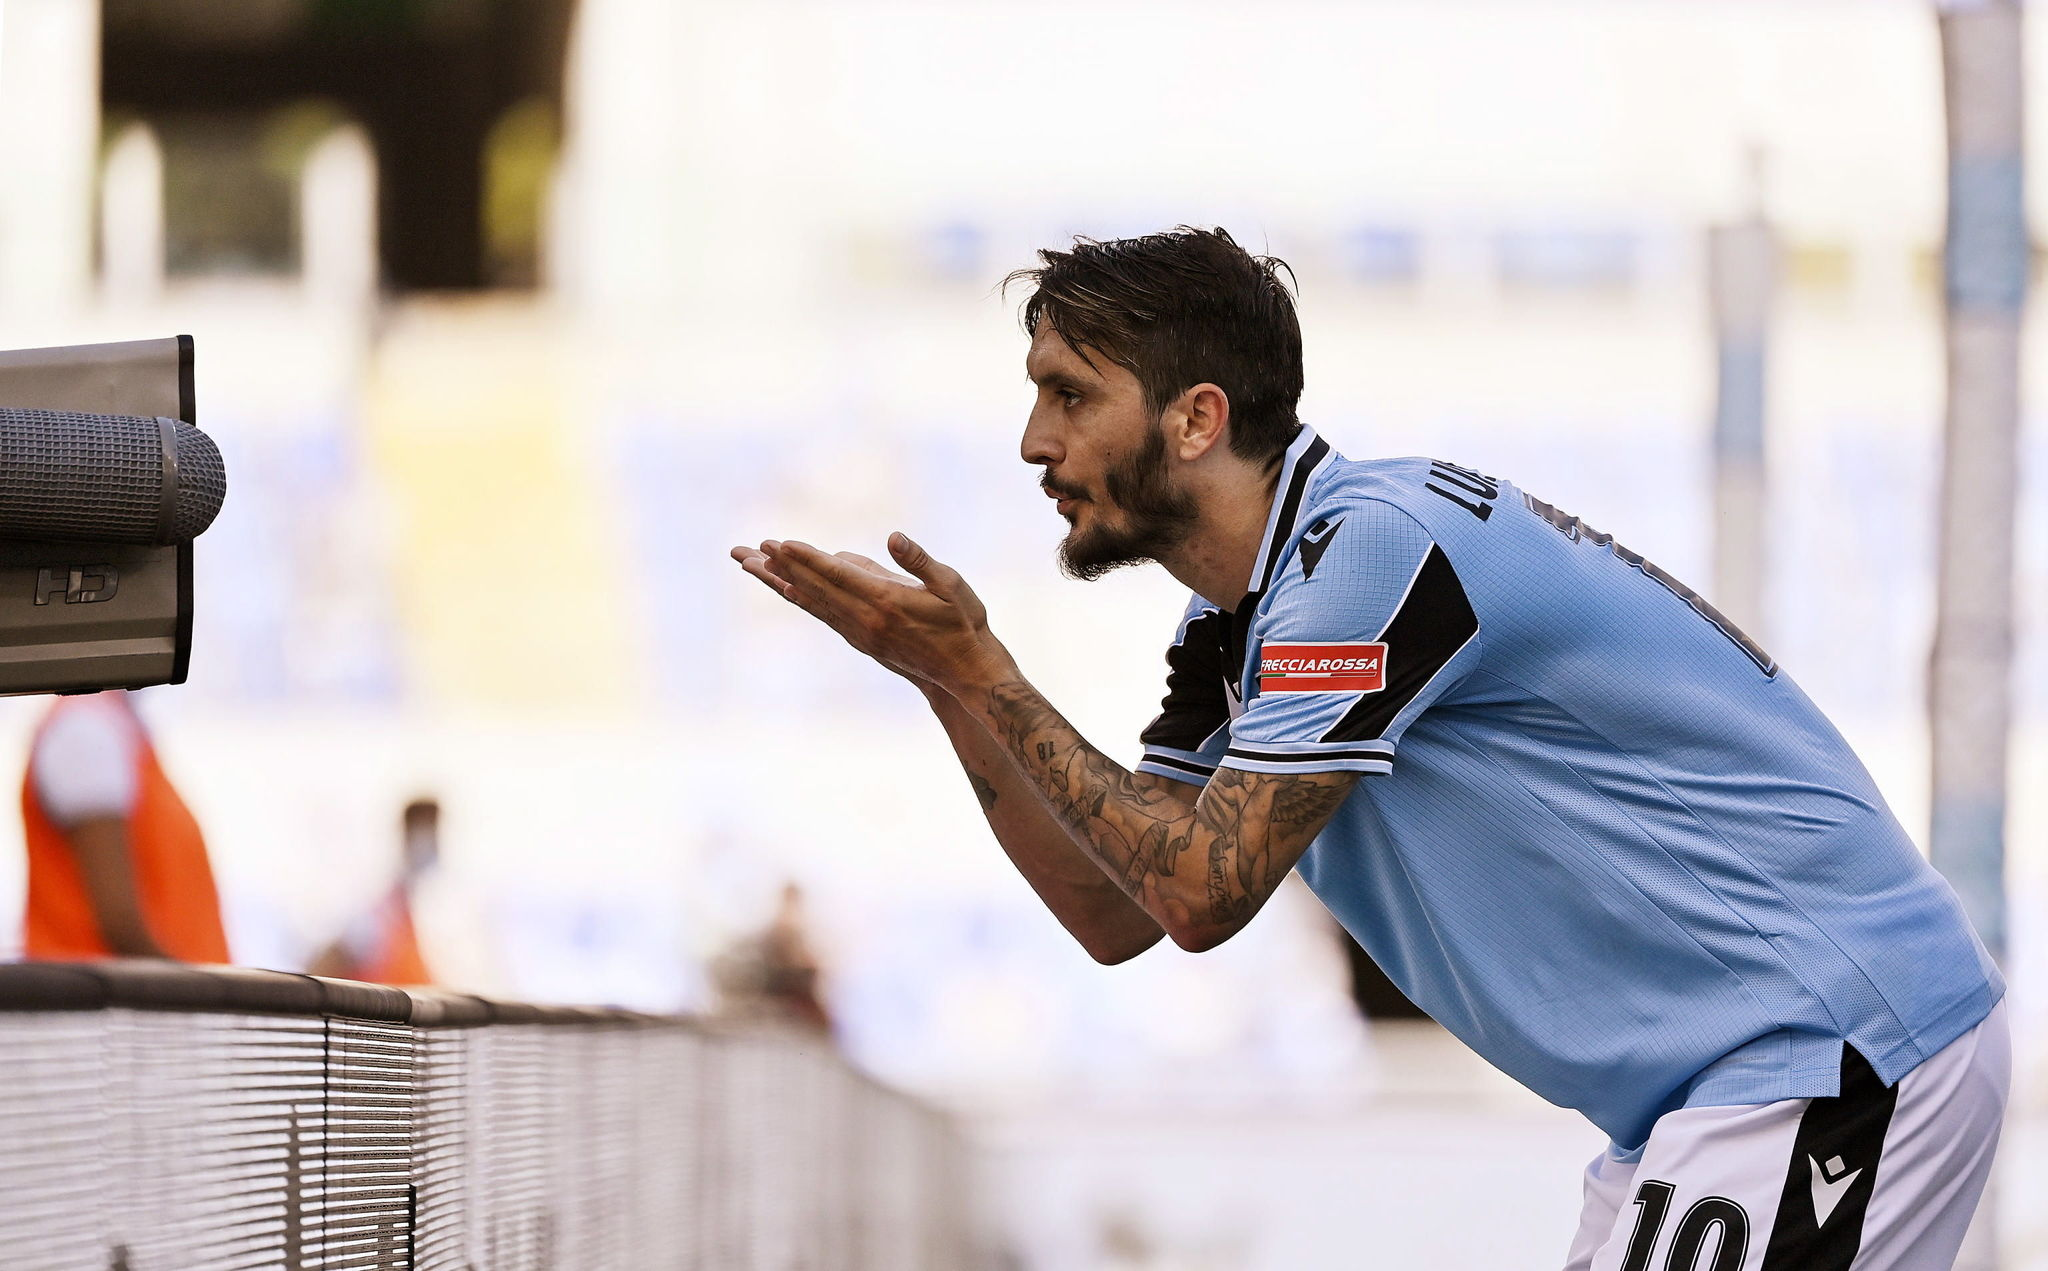 Rome (Italy), 11/07/2020.- Lazios lt;HIT gt;Luis lt;/HIT gt; lt;HIT gt;Alberto lt;/HIT gt; celebrates his goal during the Serie A soccer match between SS Lazio and US Sassuolo at the Olimpico stadium in Rome, Italy, 11 July 2020. (Italia, Roma) EFE/EPA/RICCARDO ANTIMIANI